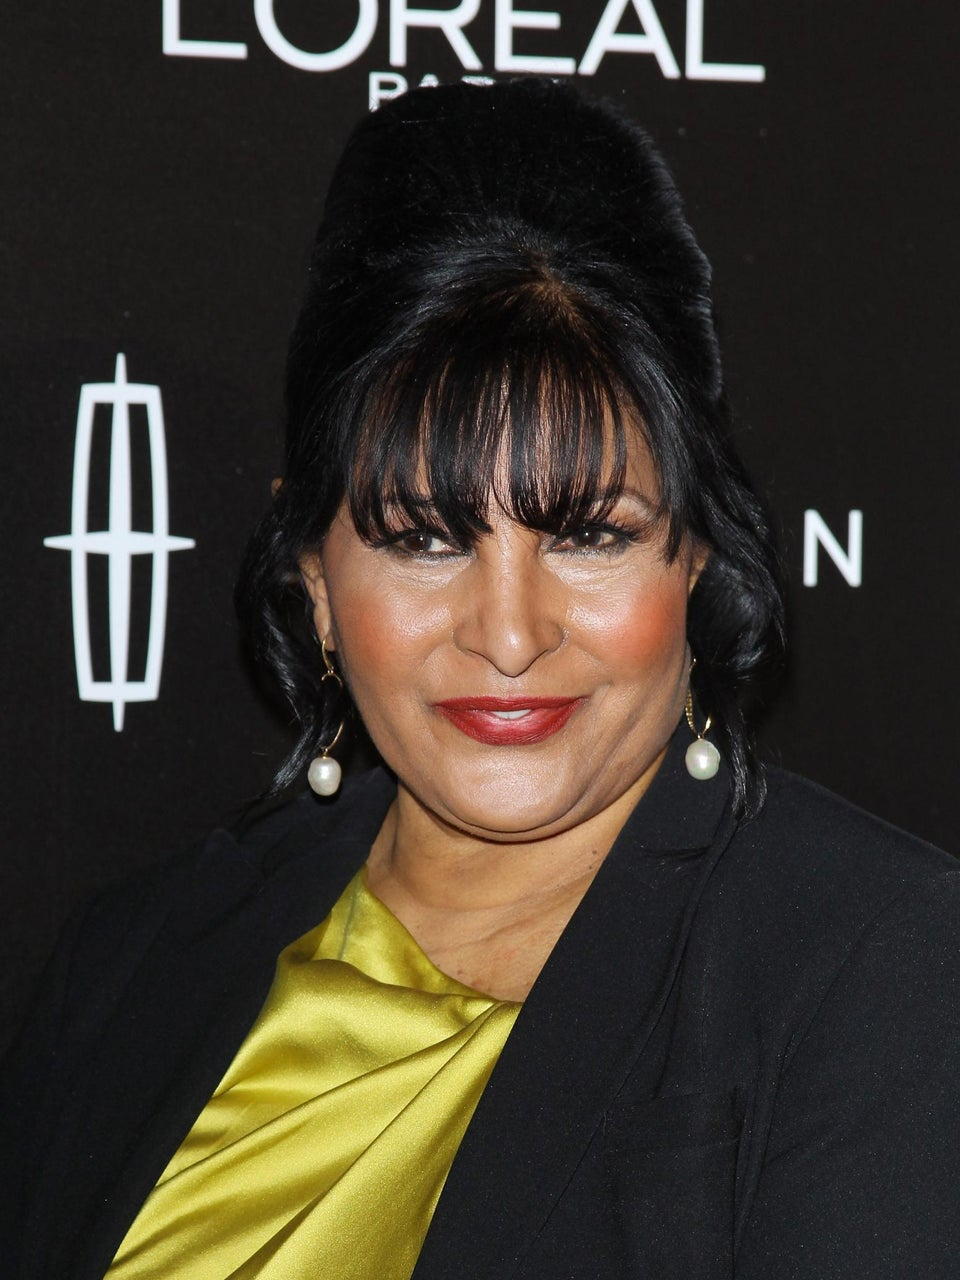 EXCLUSIVE: Pam Grier on Film Retrospective, Working on Her Biopic, and Loving 'Django Unchained'